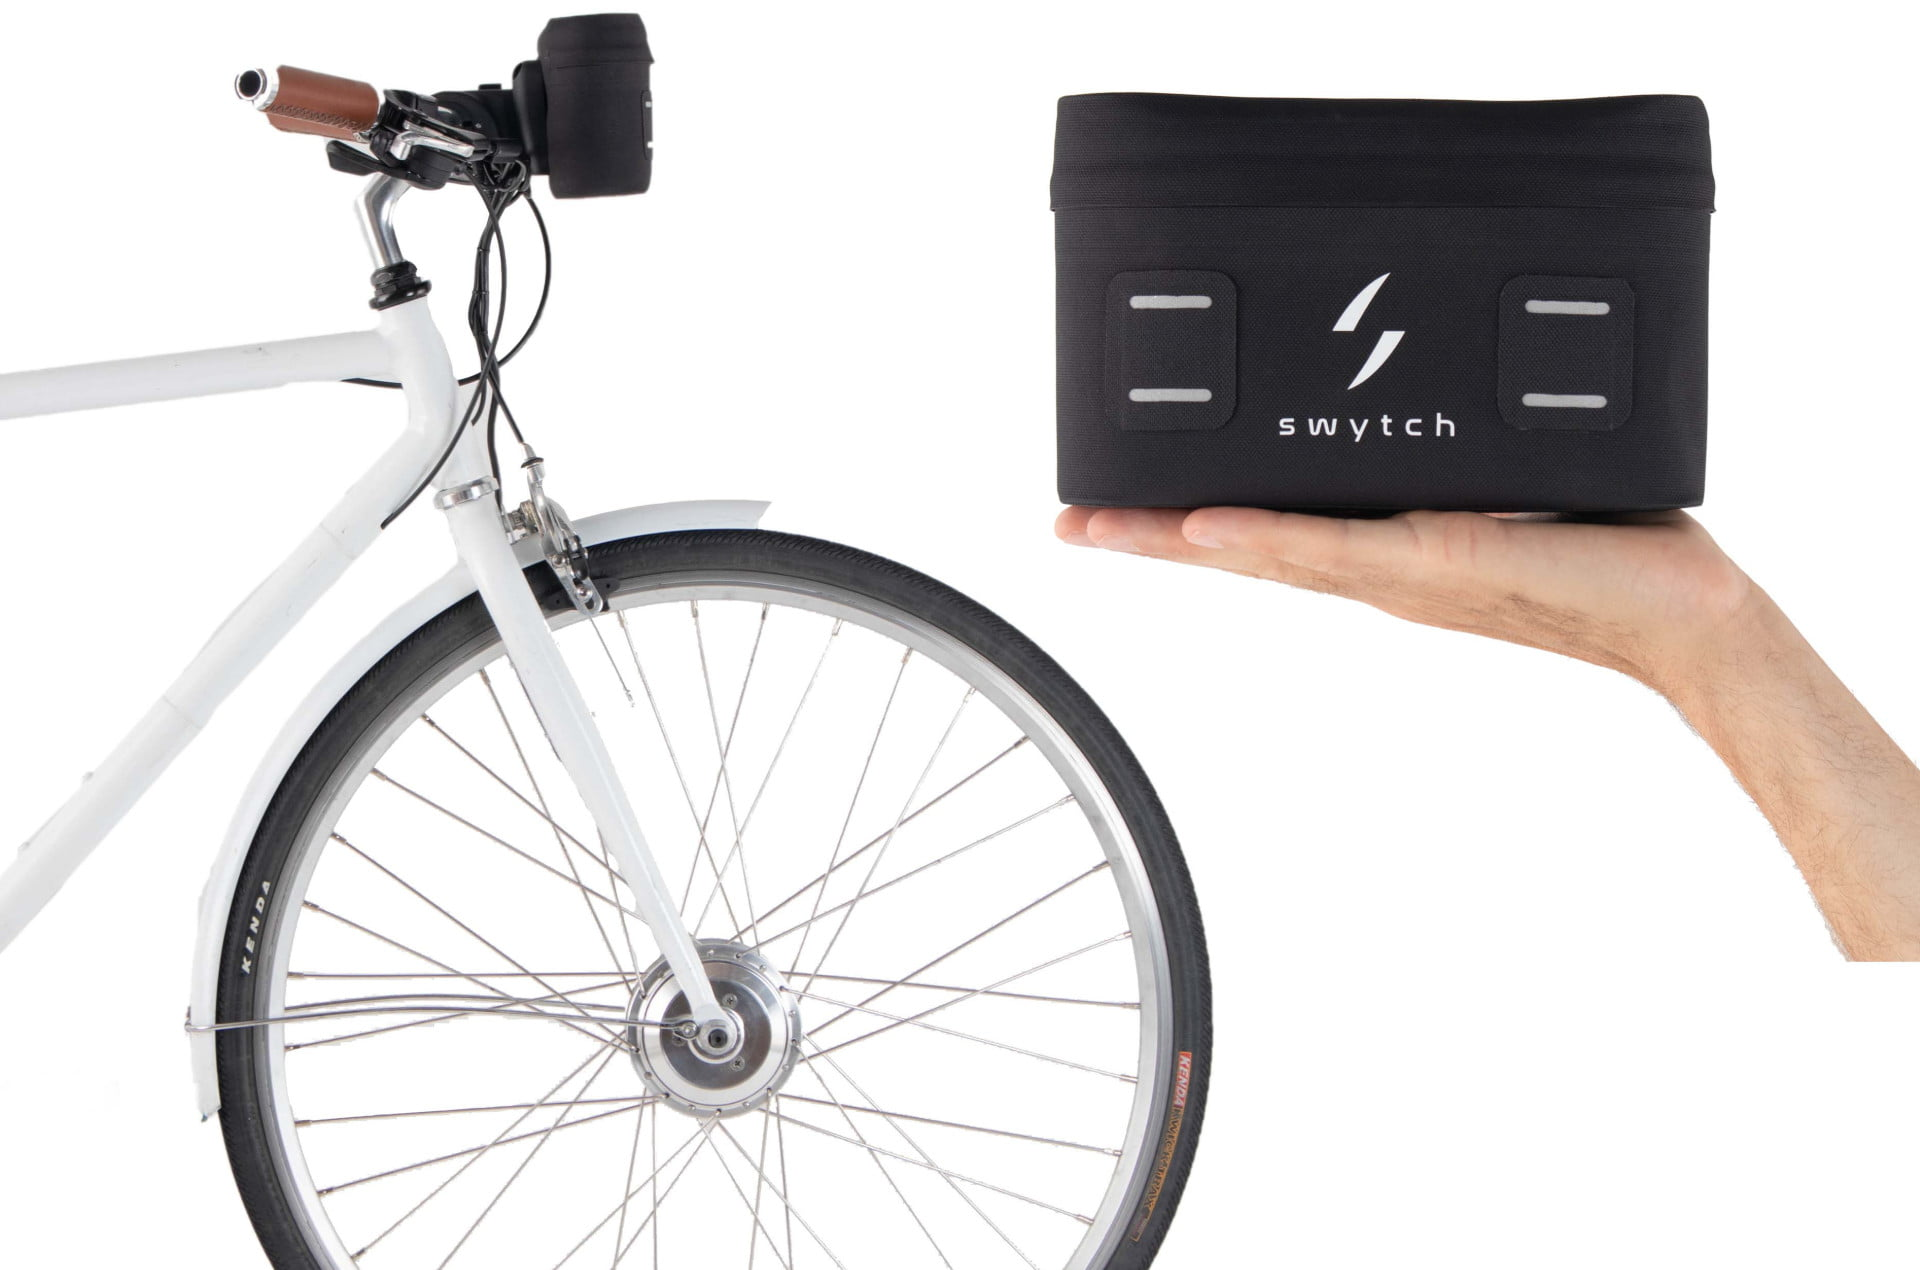 compact swytch kit converts any bike to an e for sustainable transport 3